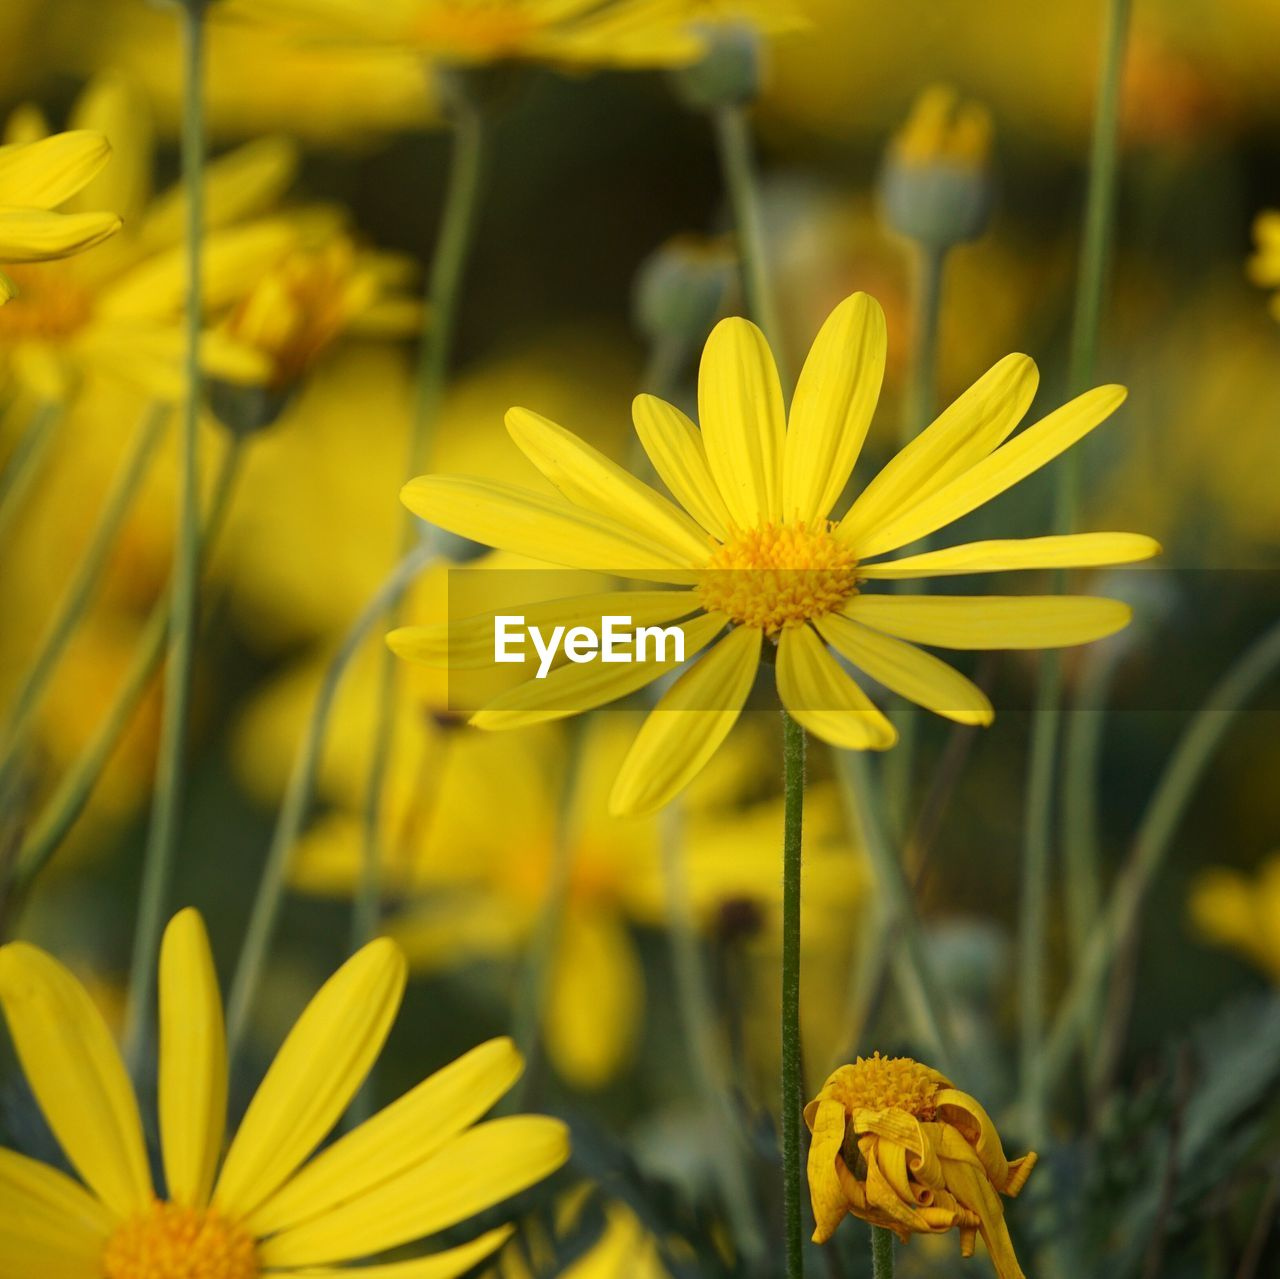 flowering plant, flower, yellow, fragility, vulnerability, beauty in nature, petal, freshness, flower head, plant, inflorescence, growth, close-up, focus on foreground, nature, pollen, no people, day, outdoors, selective focus